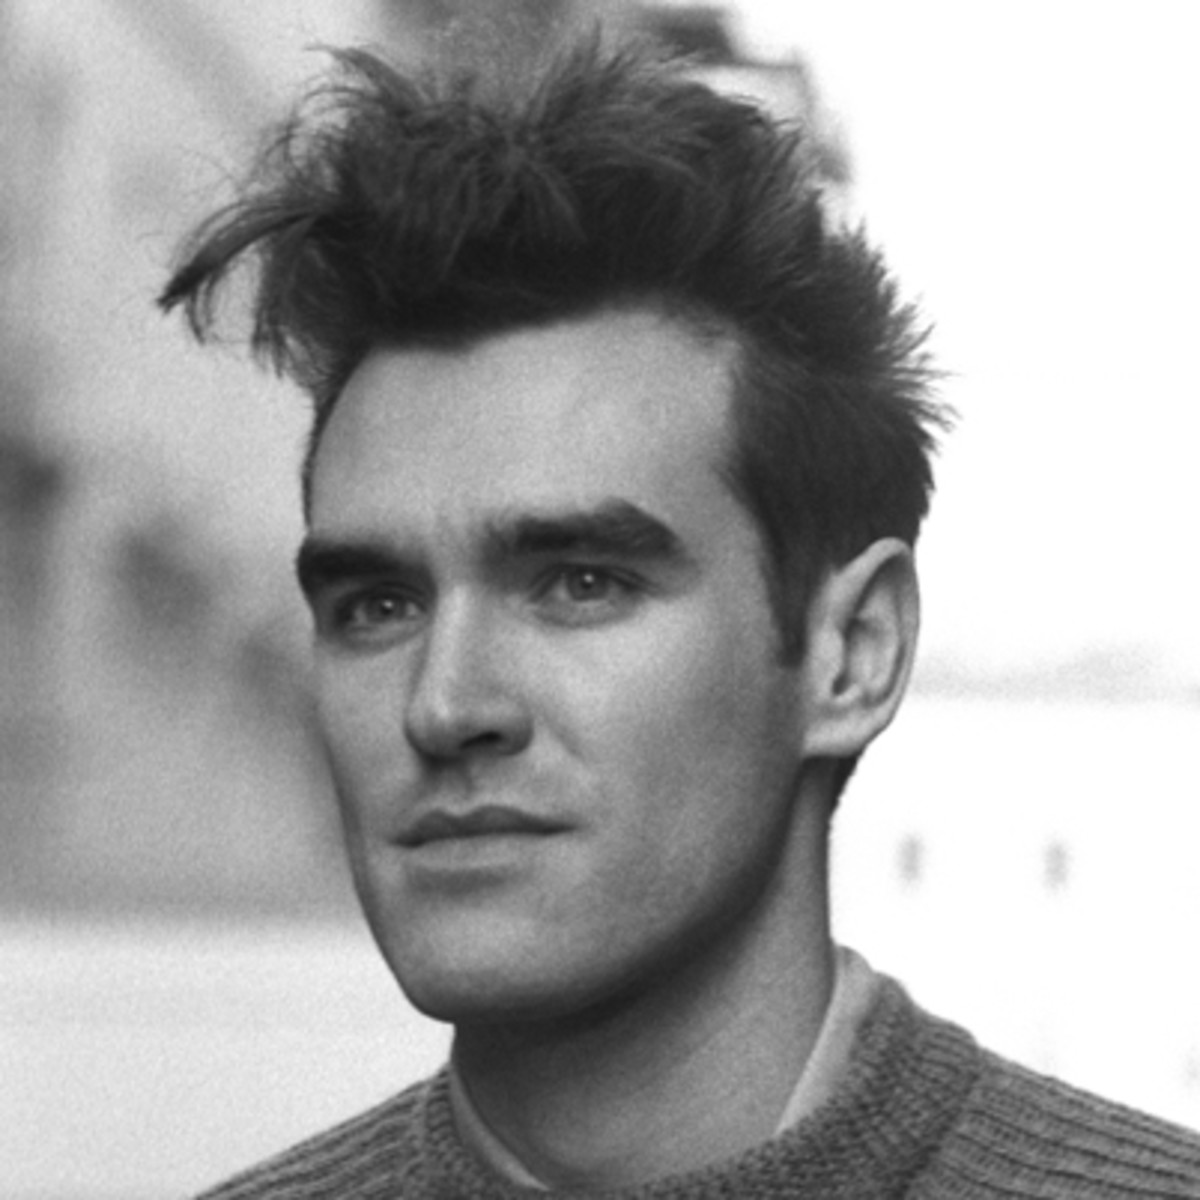 morrissey-of the-smiths singer